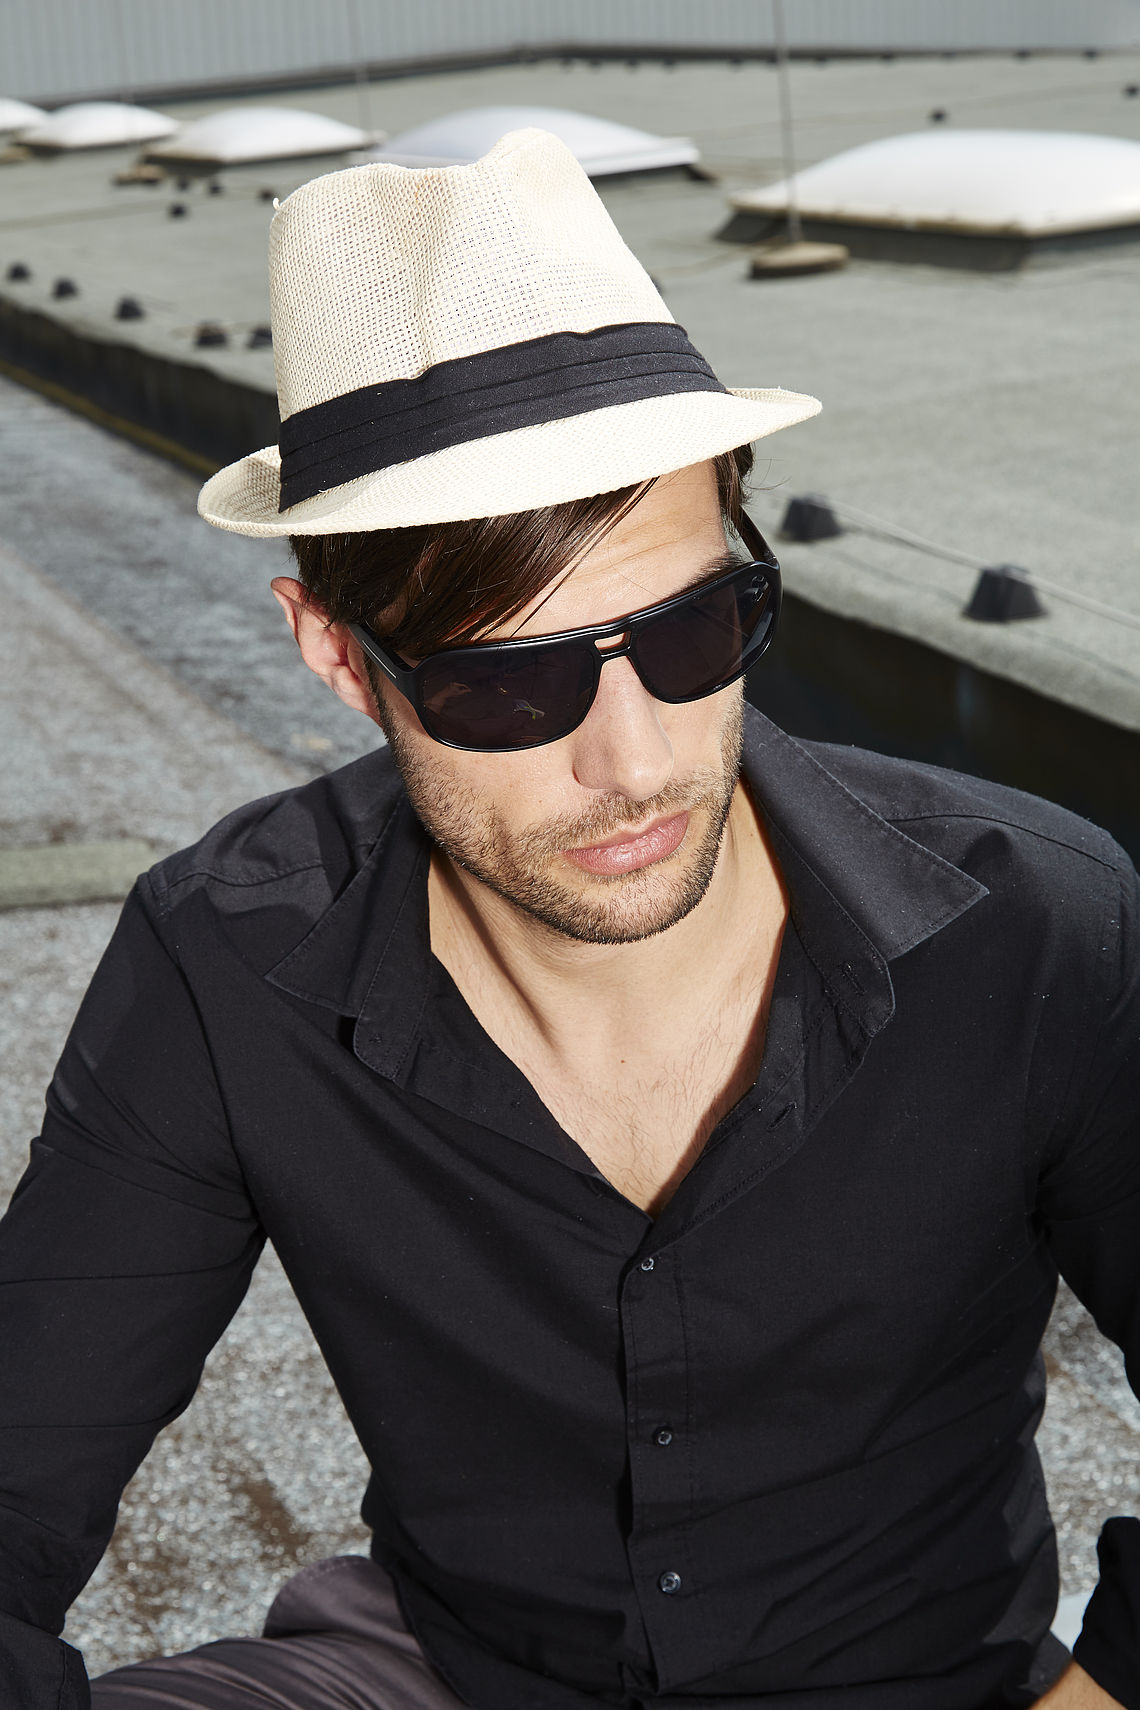 Man on roof with sunglasses